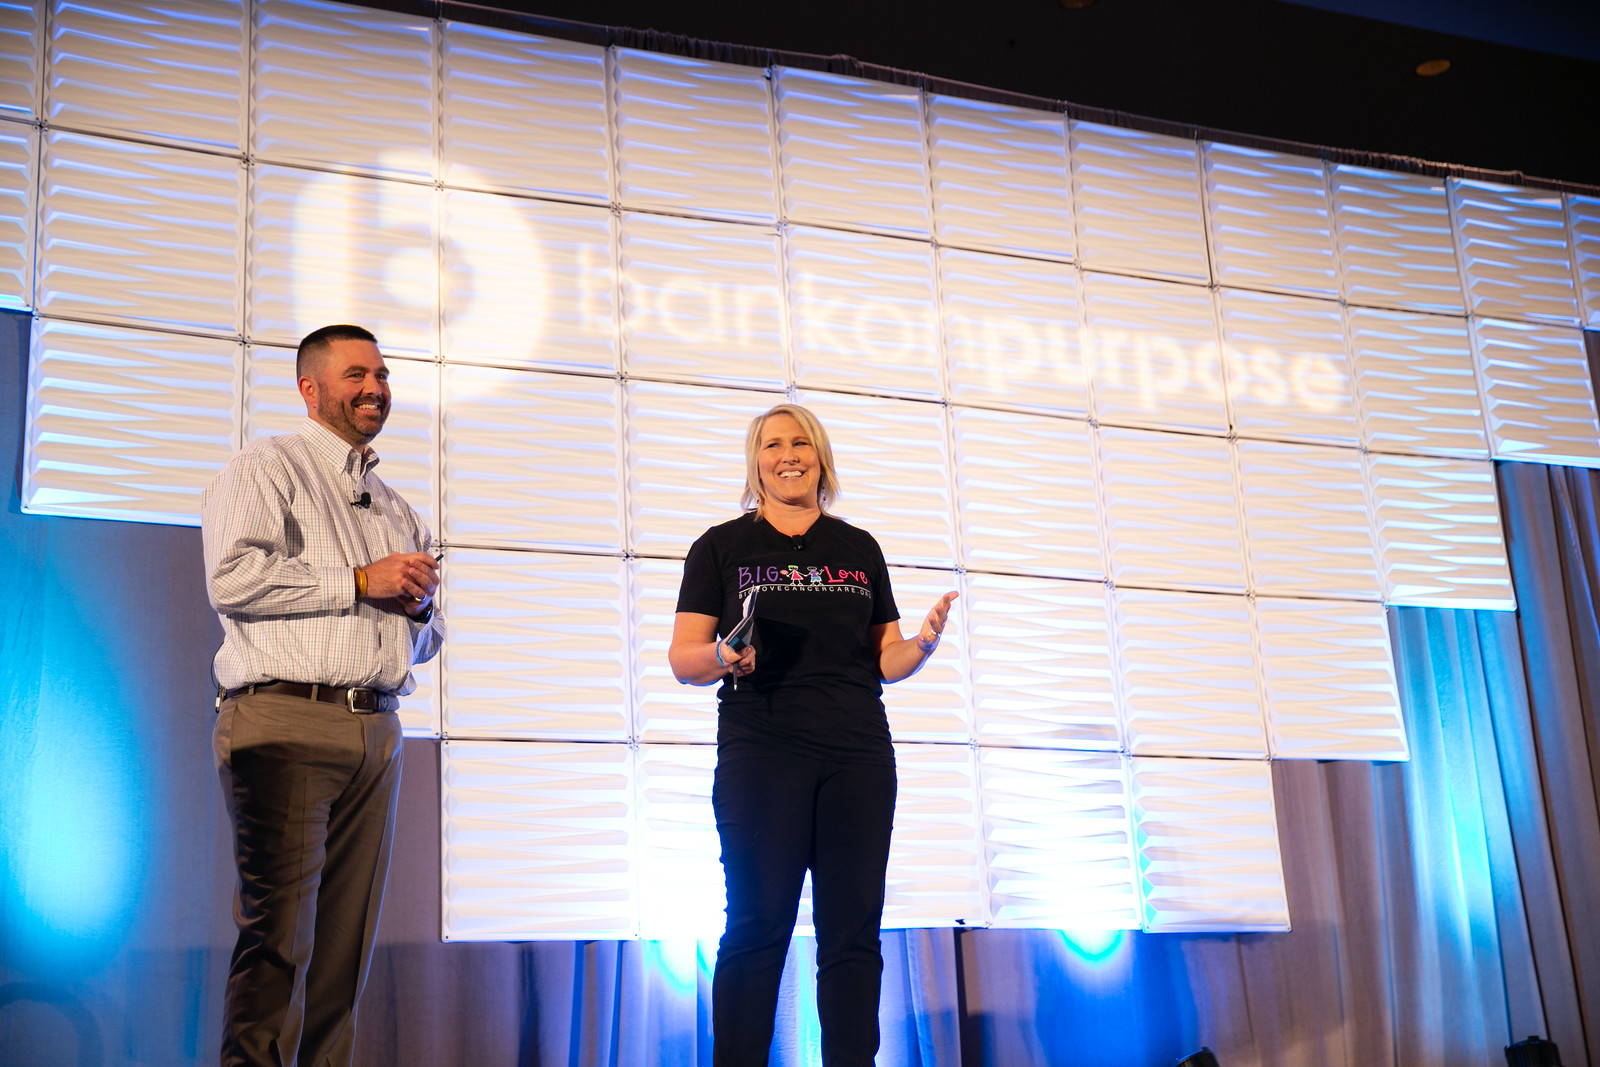 Dallas and B.I.G. Love's founder, Jessica Phillips, share some happy memories of Ollie and Brooke on stage at BankOnPurpose. They were both special kids, and they are still spreading smiles!